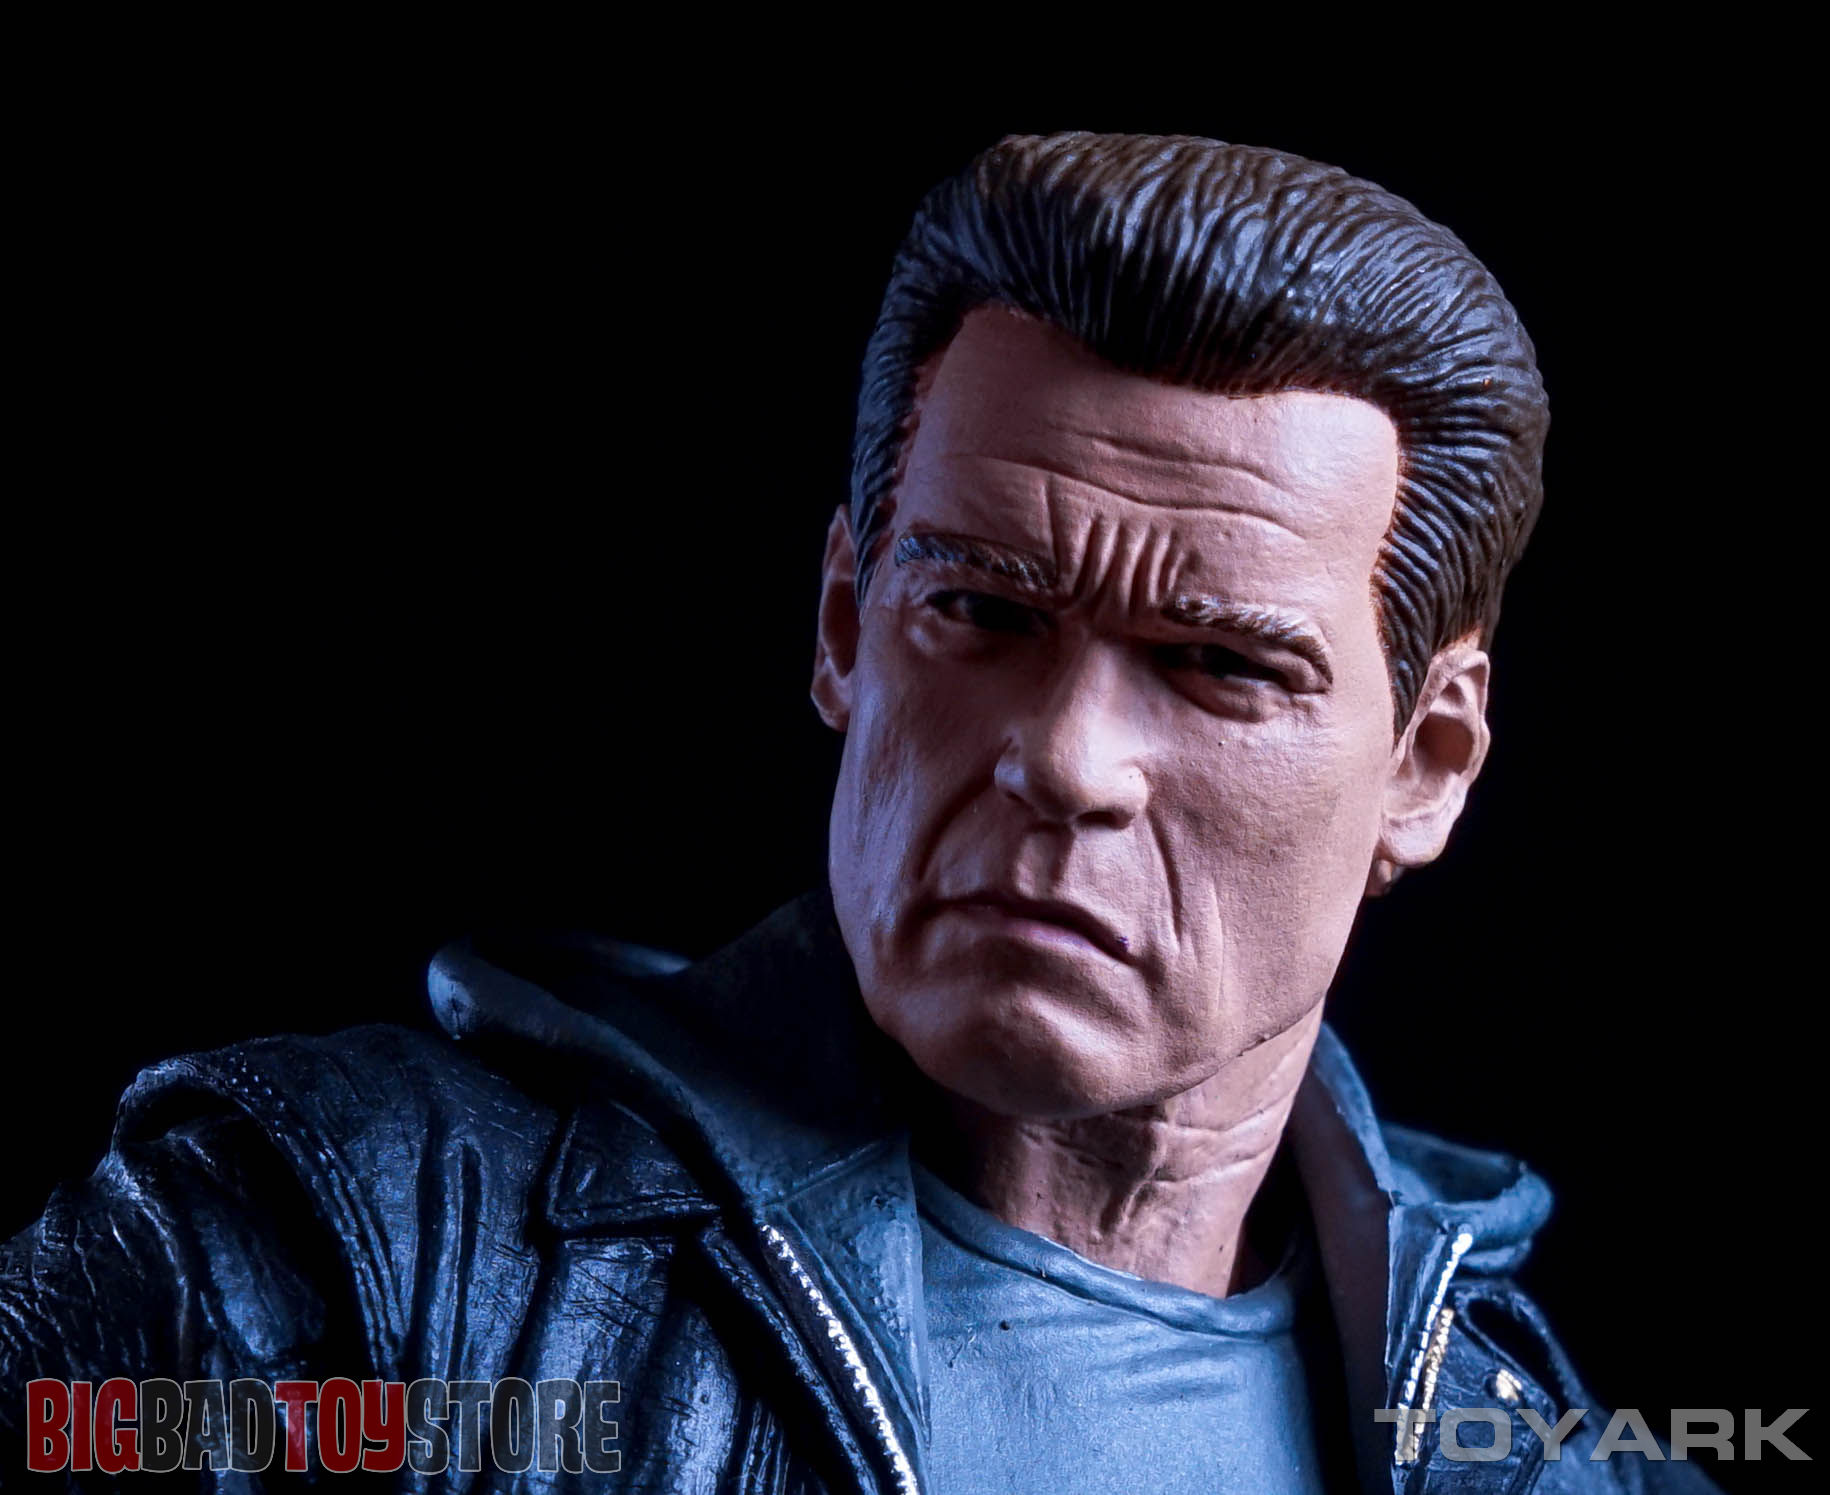 http://news.toyark.com/wp-content/uploads/sites/4/2015/10/NECA-Guardian-T800-Terminator-Genisys-031.jpg